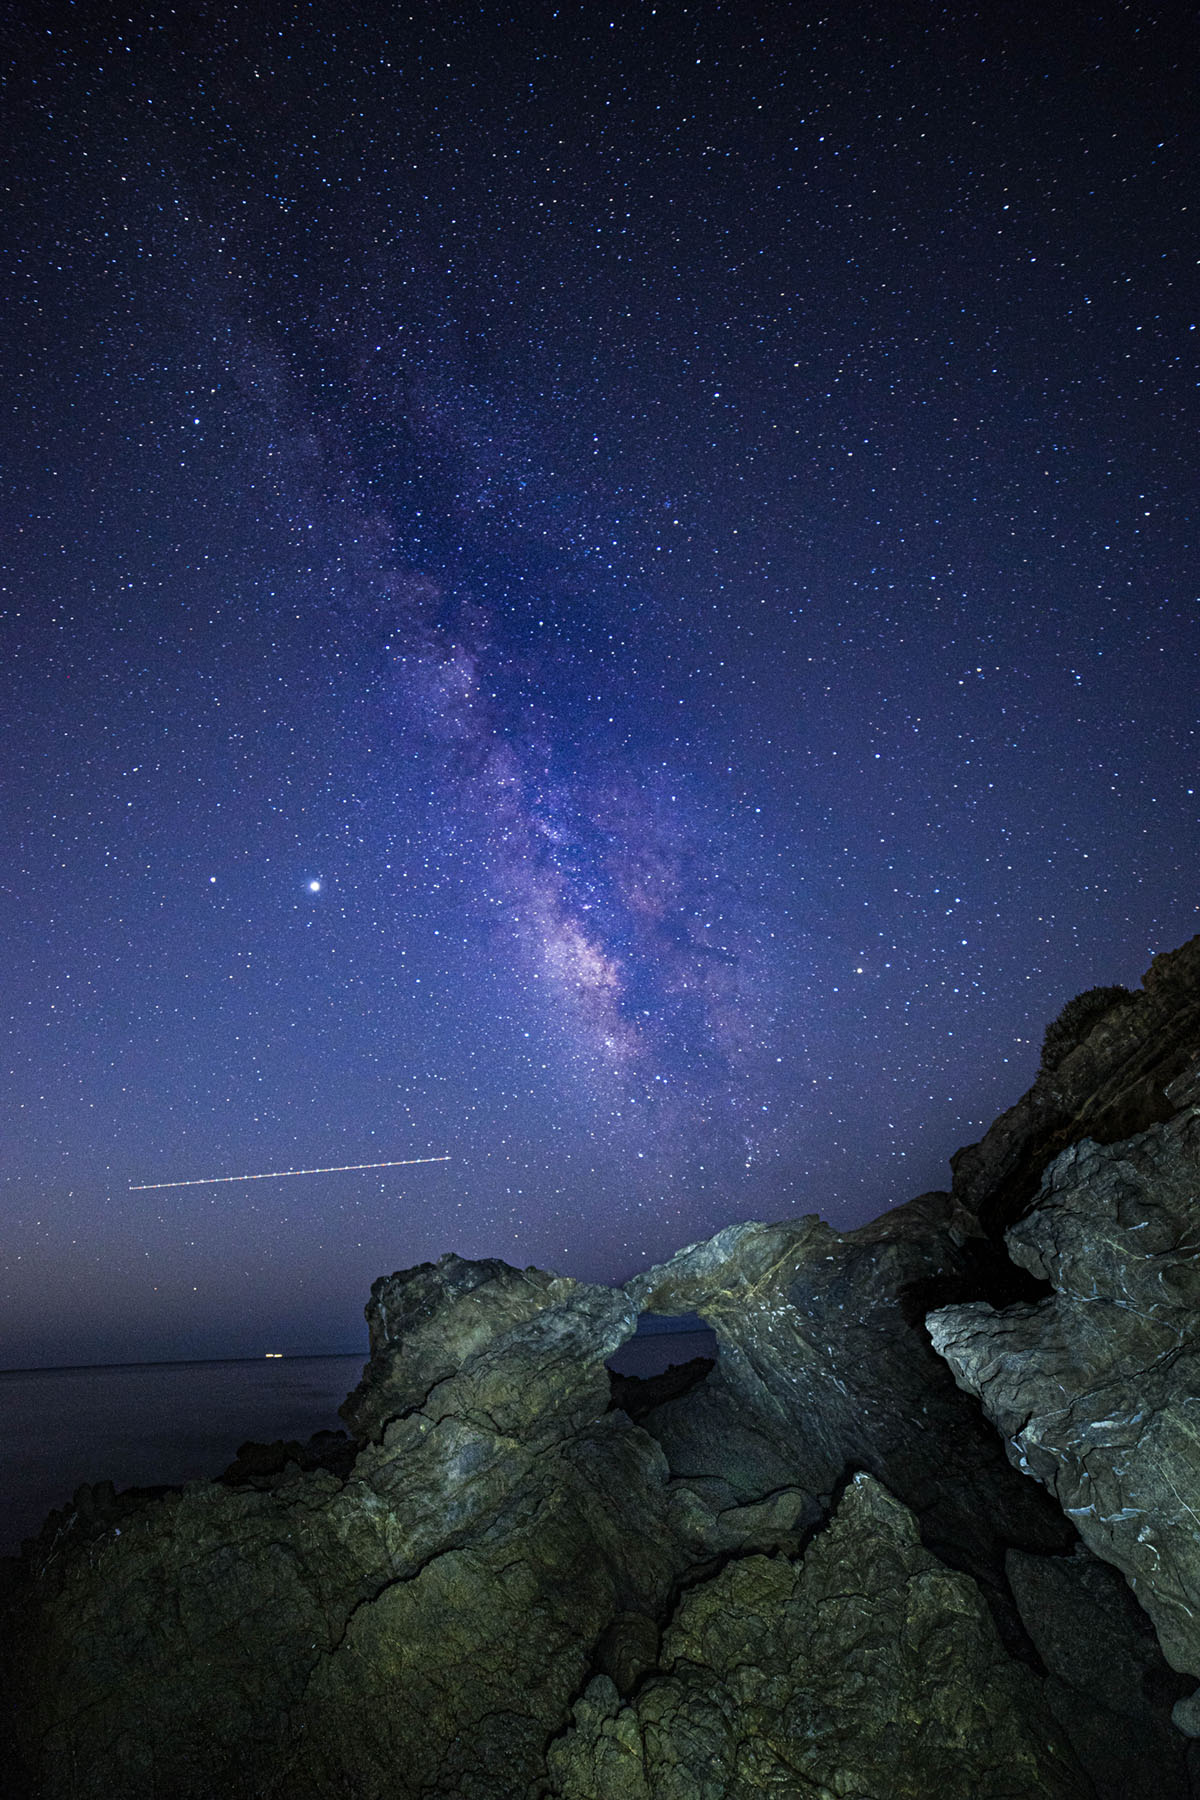 photo of the sky at night stars, rock